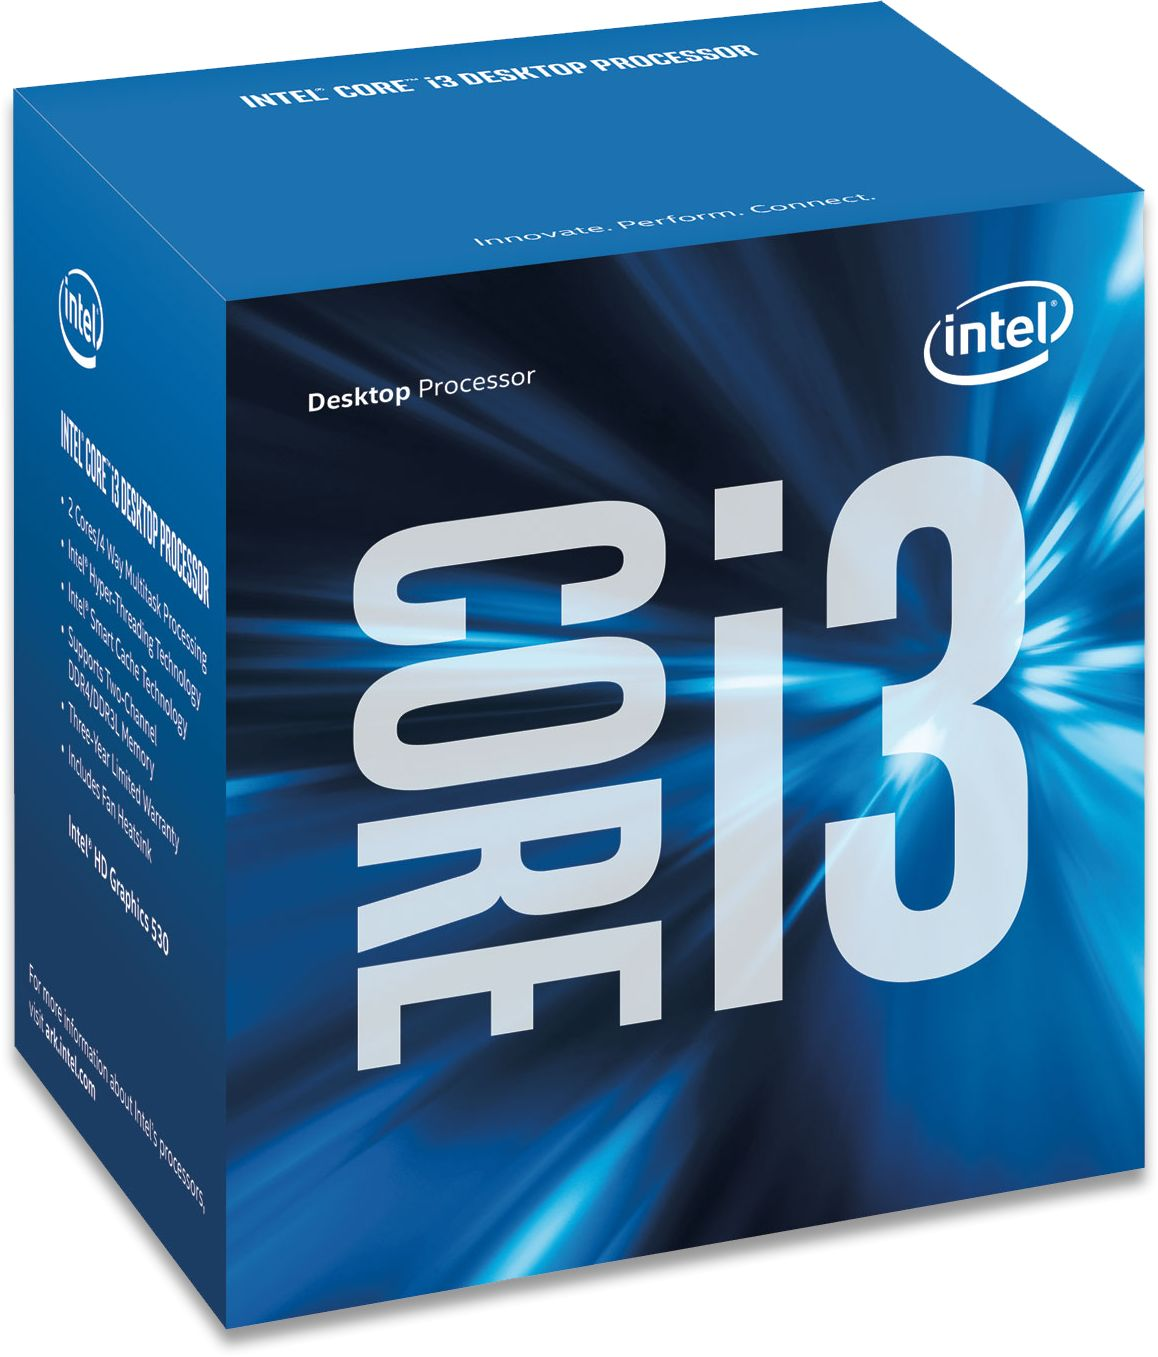 Intel Skylake 6th Generation Core I3 Processors